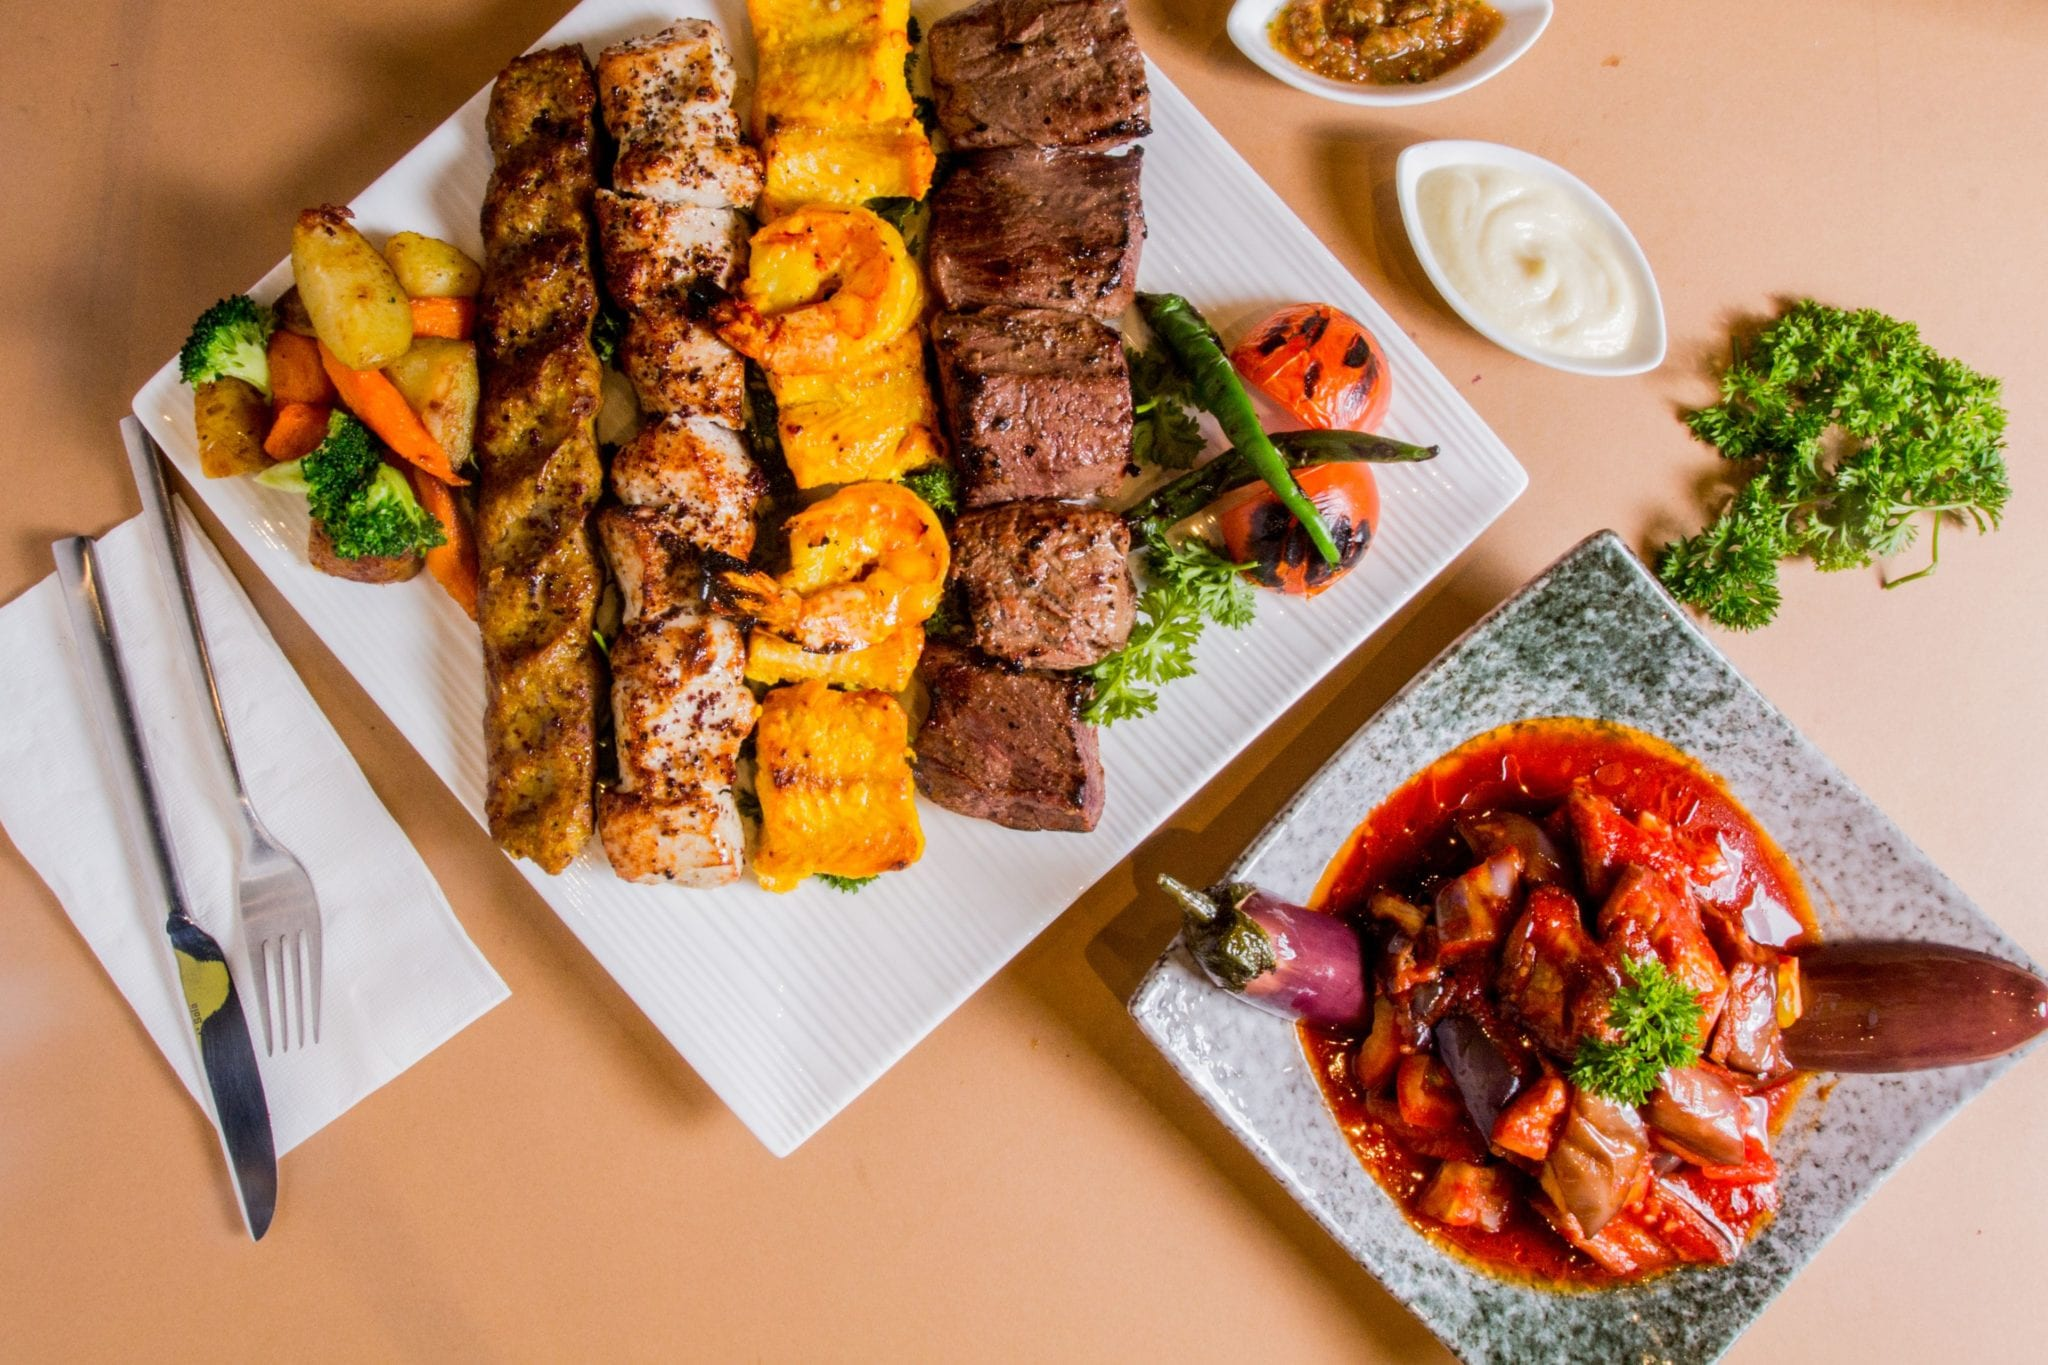 medley of kebab grills and side dishes